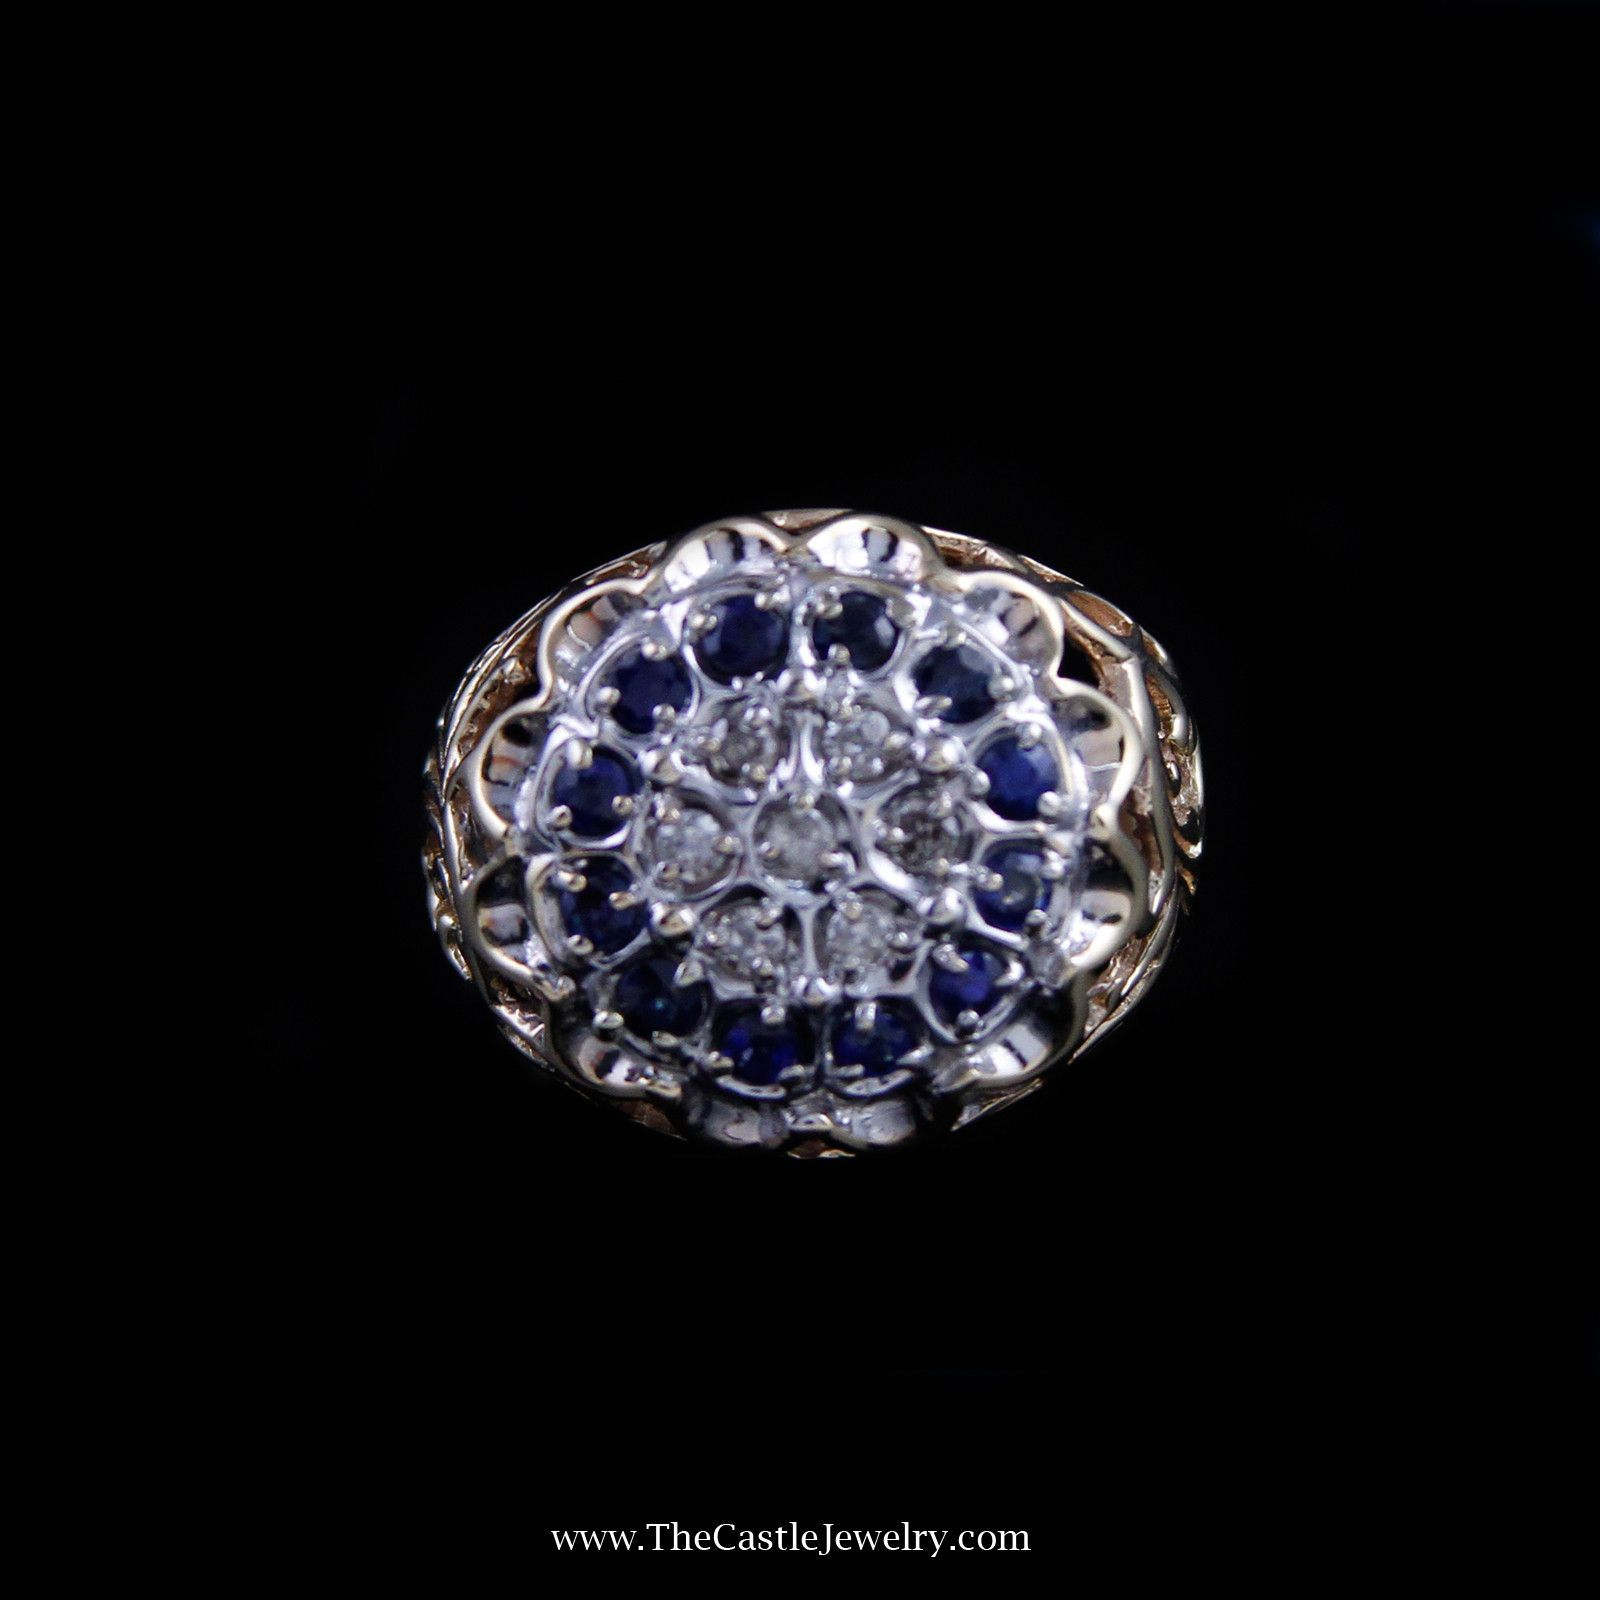 white gold designer carat in with tw diamonds mens michael of stud rose hill earrings sapphire